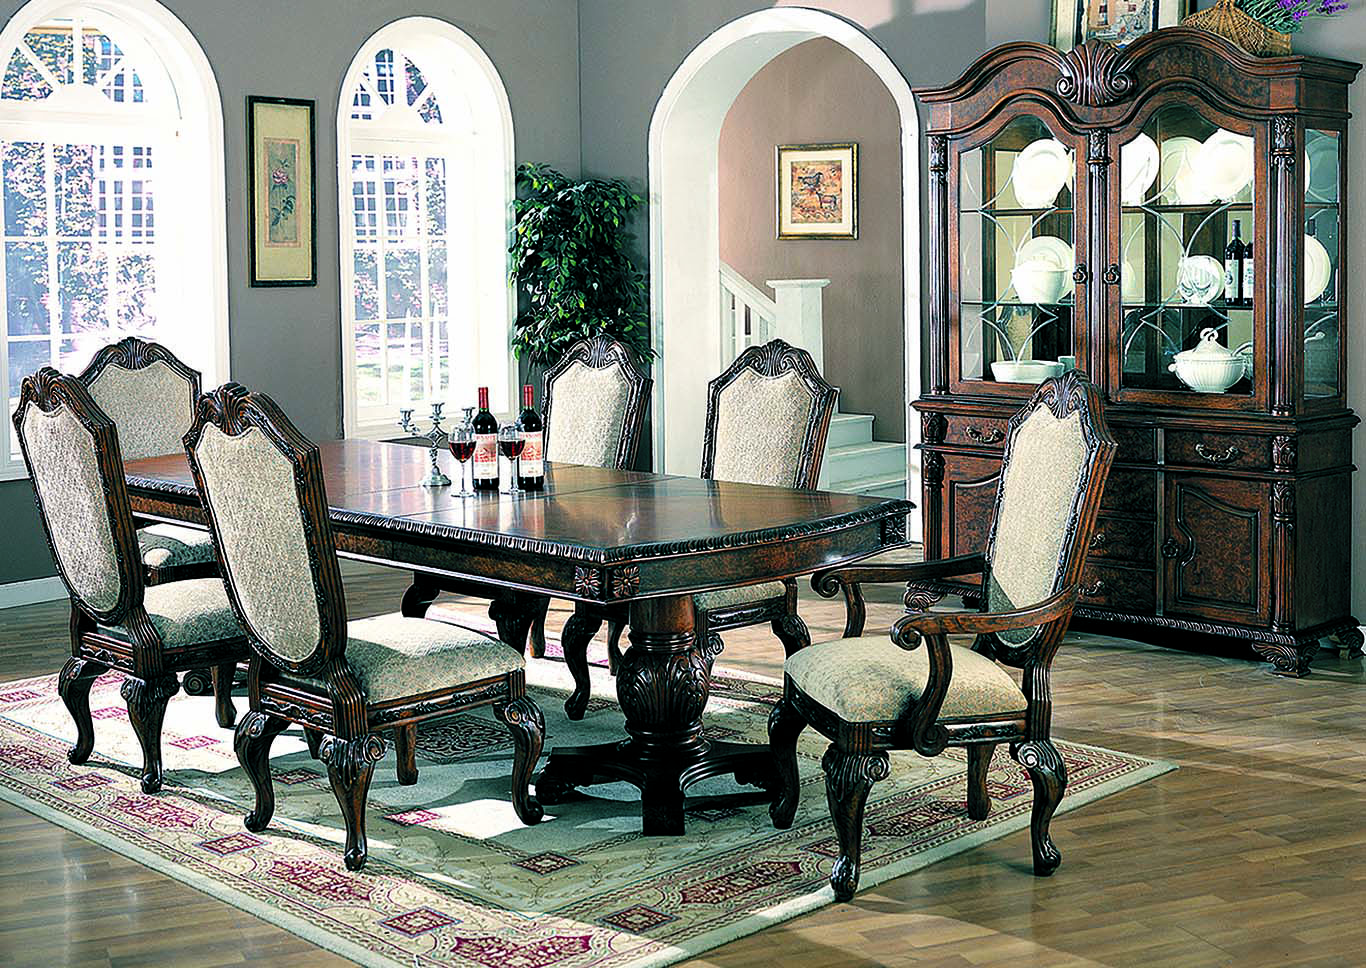 Saint Charles Brown Dining Table W/4 Side Chairs, 2 Arm Chairs, Buffet